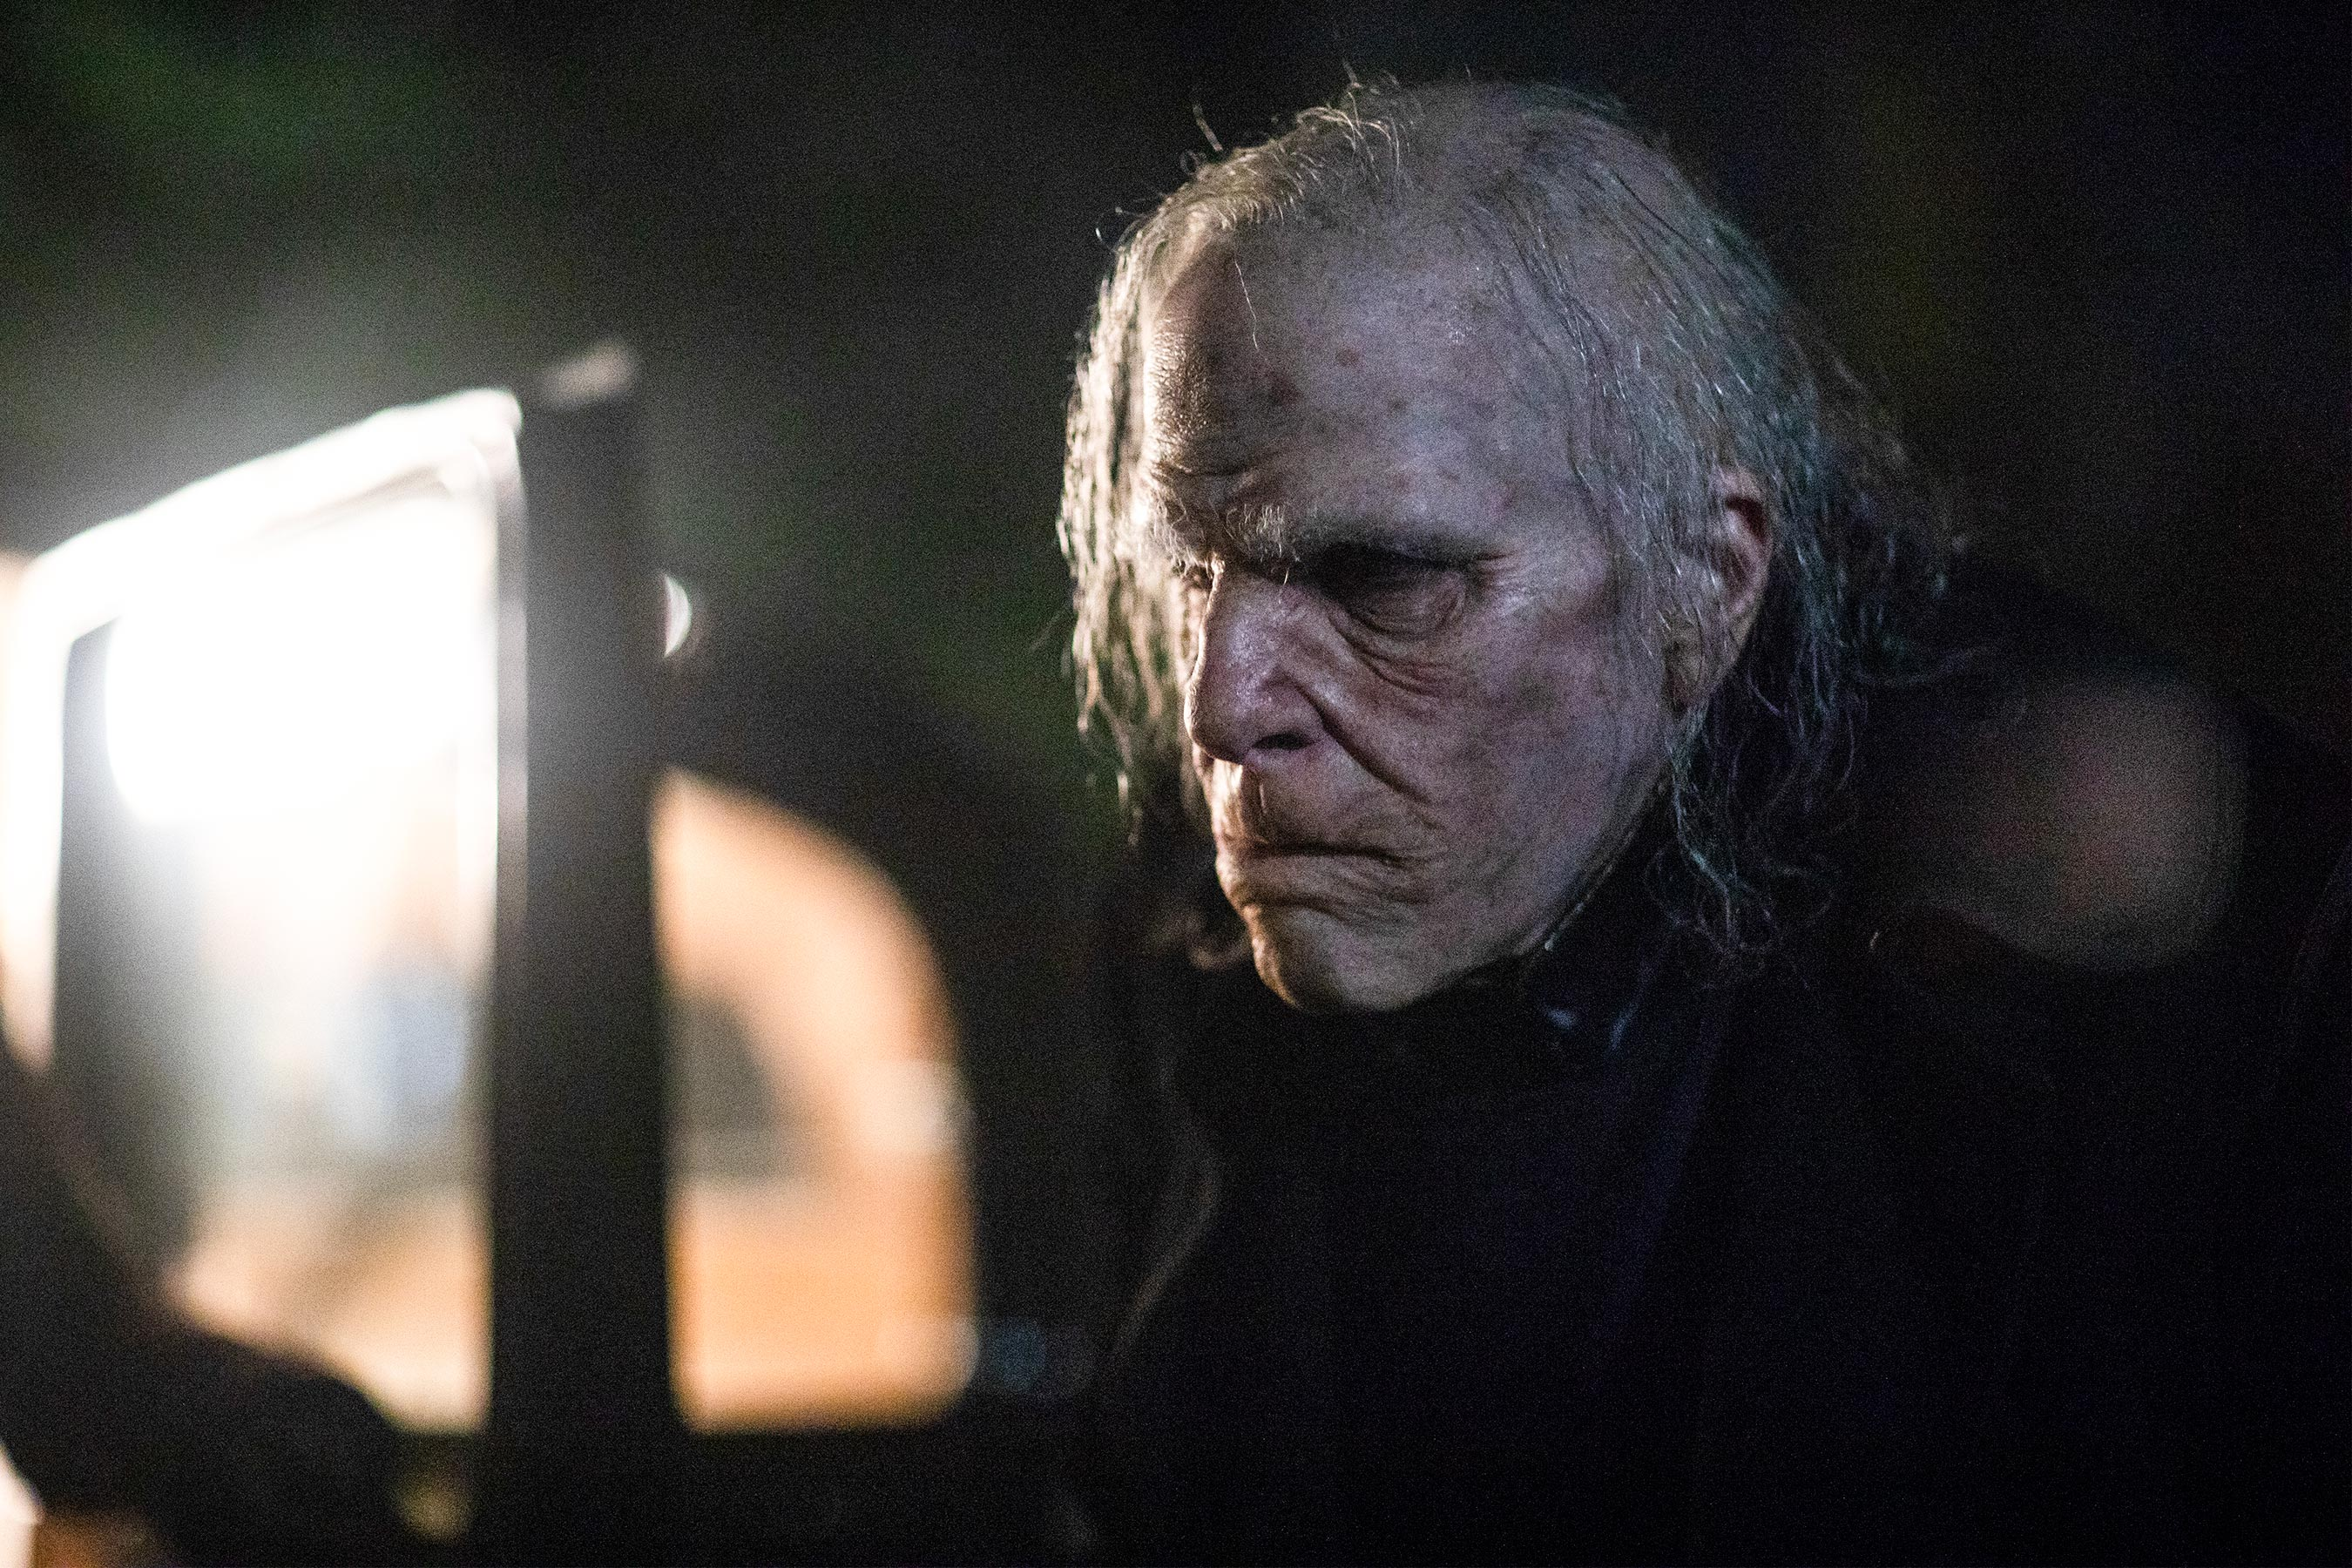 [News] AMC Releases Horror Series NOS4A2 Trailer, Reveals Premiere Date